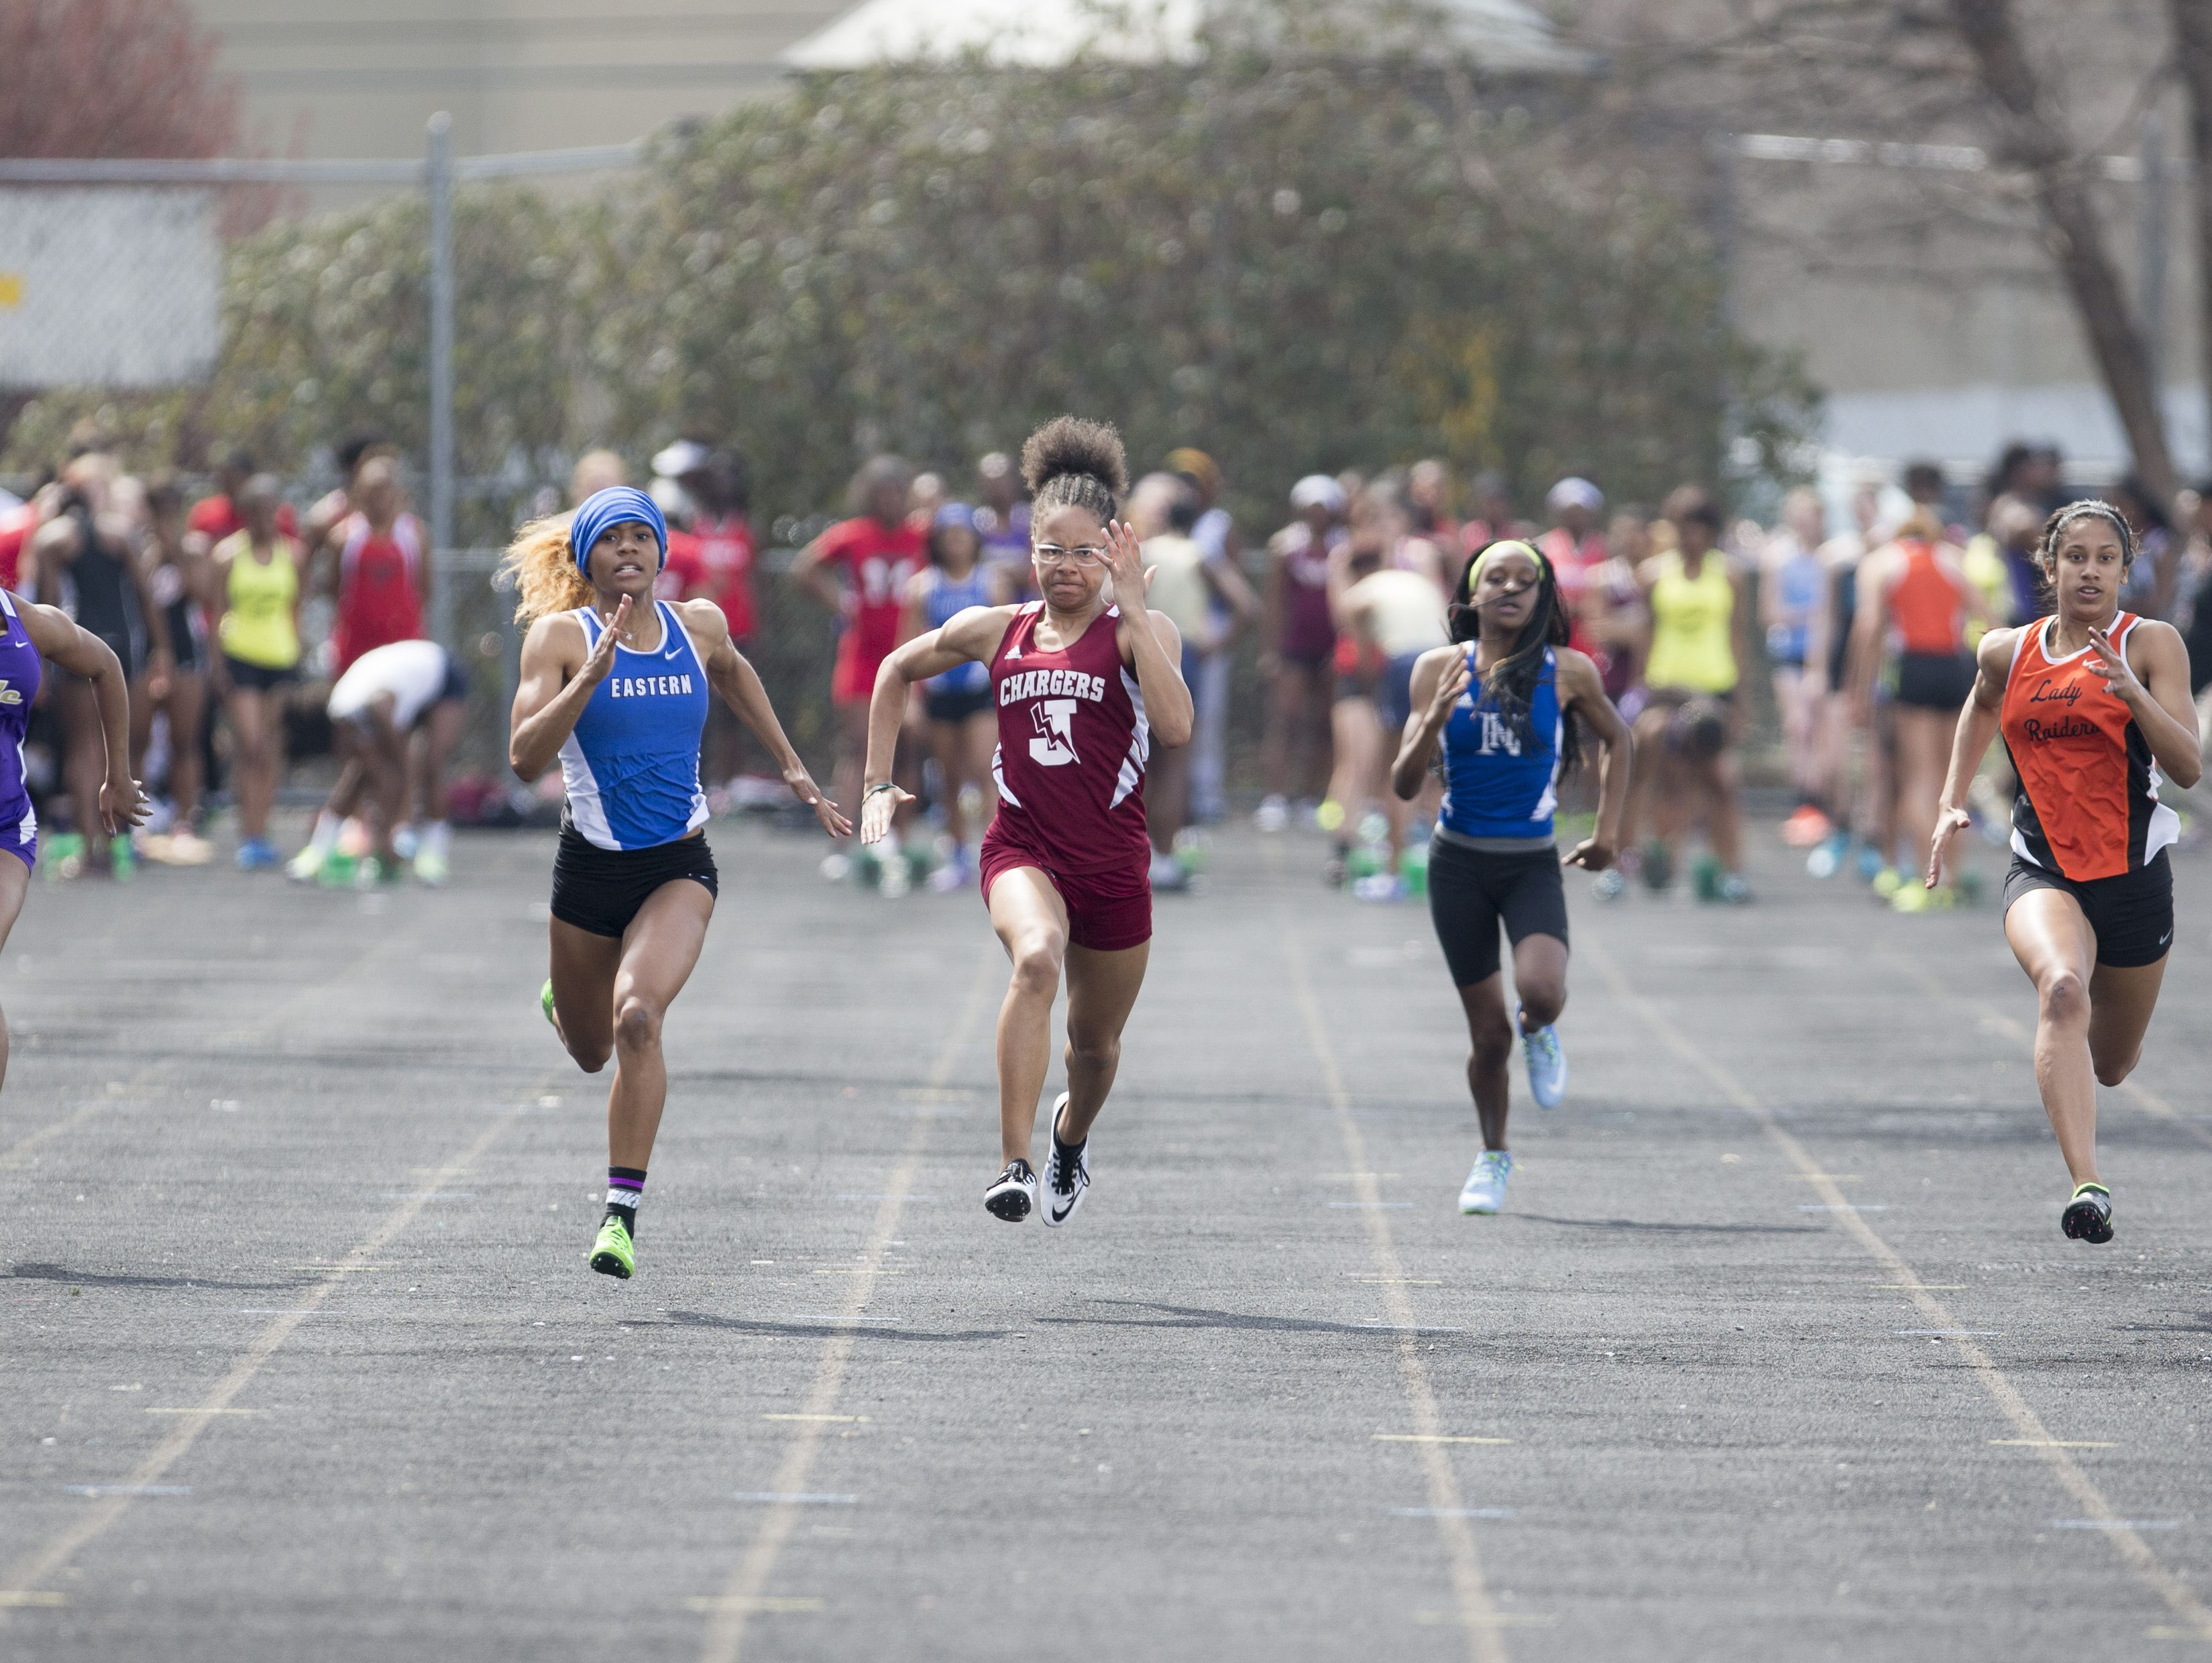 Participants compete in the Girl's 100 Meter Dash during the Lenny Lyles Invitational Track meet at Louisville Central High School.